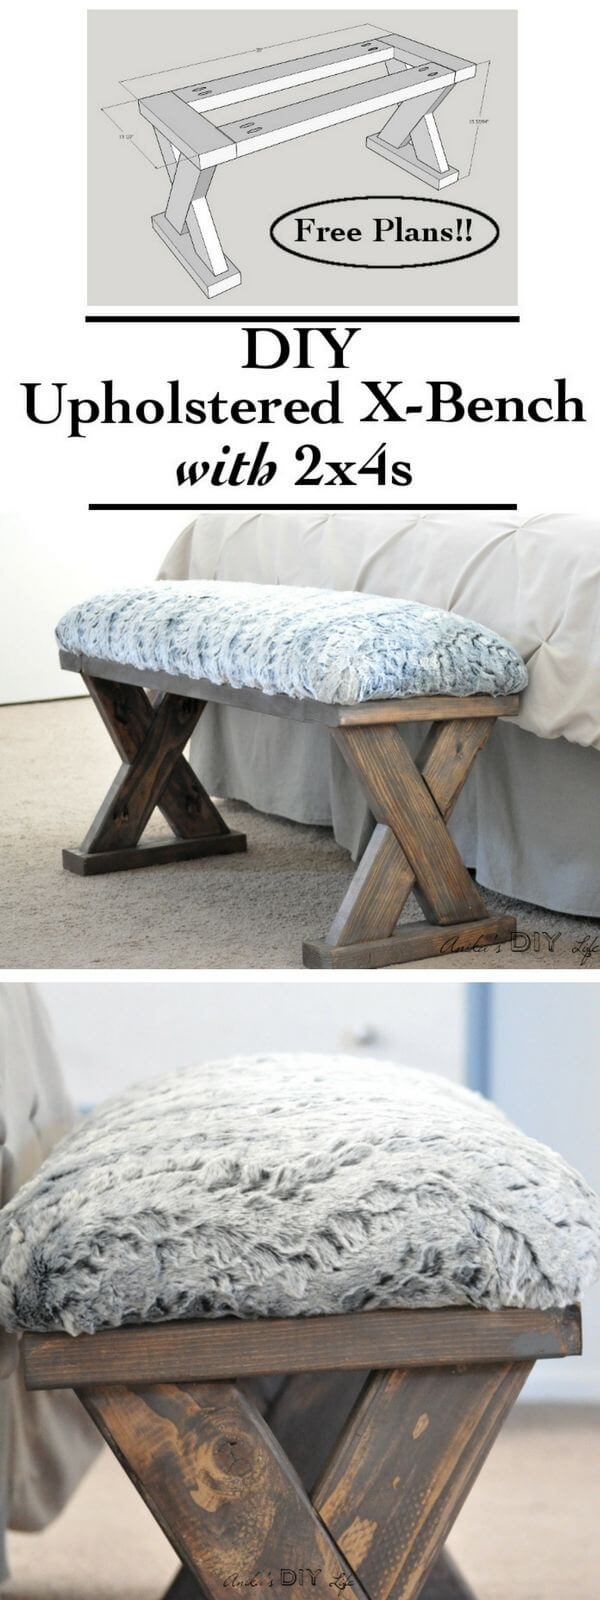 Upholstered Bench for the Bedroom